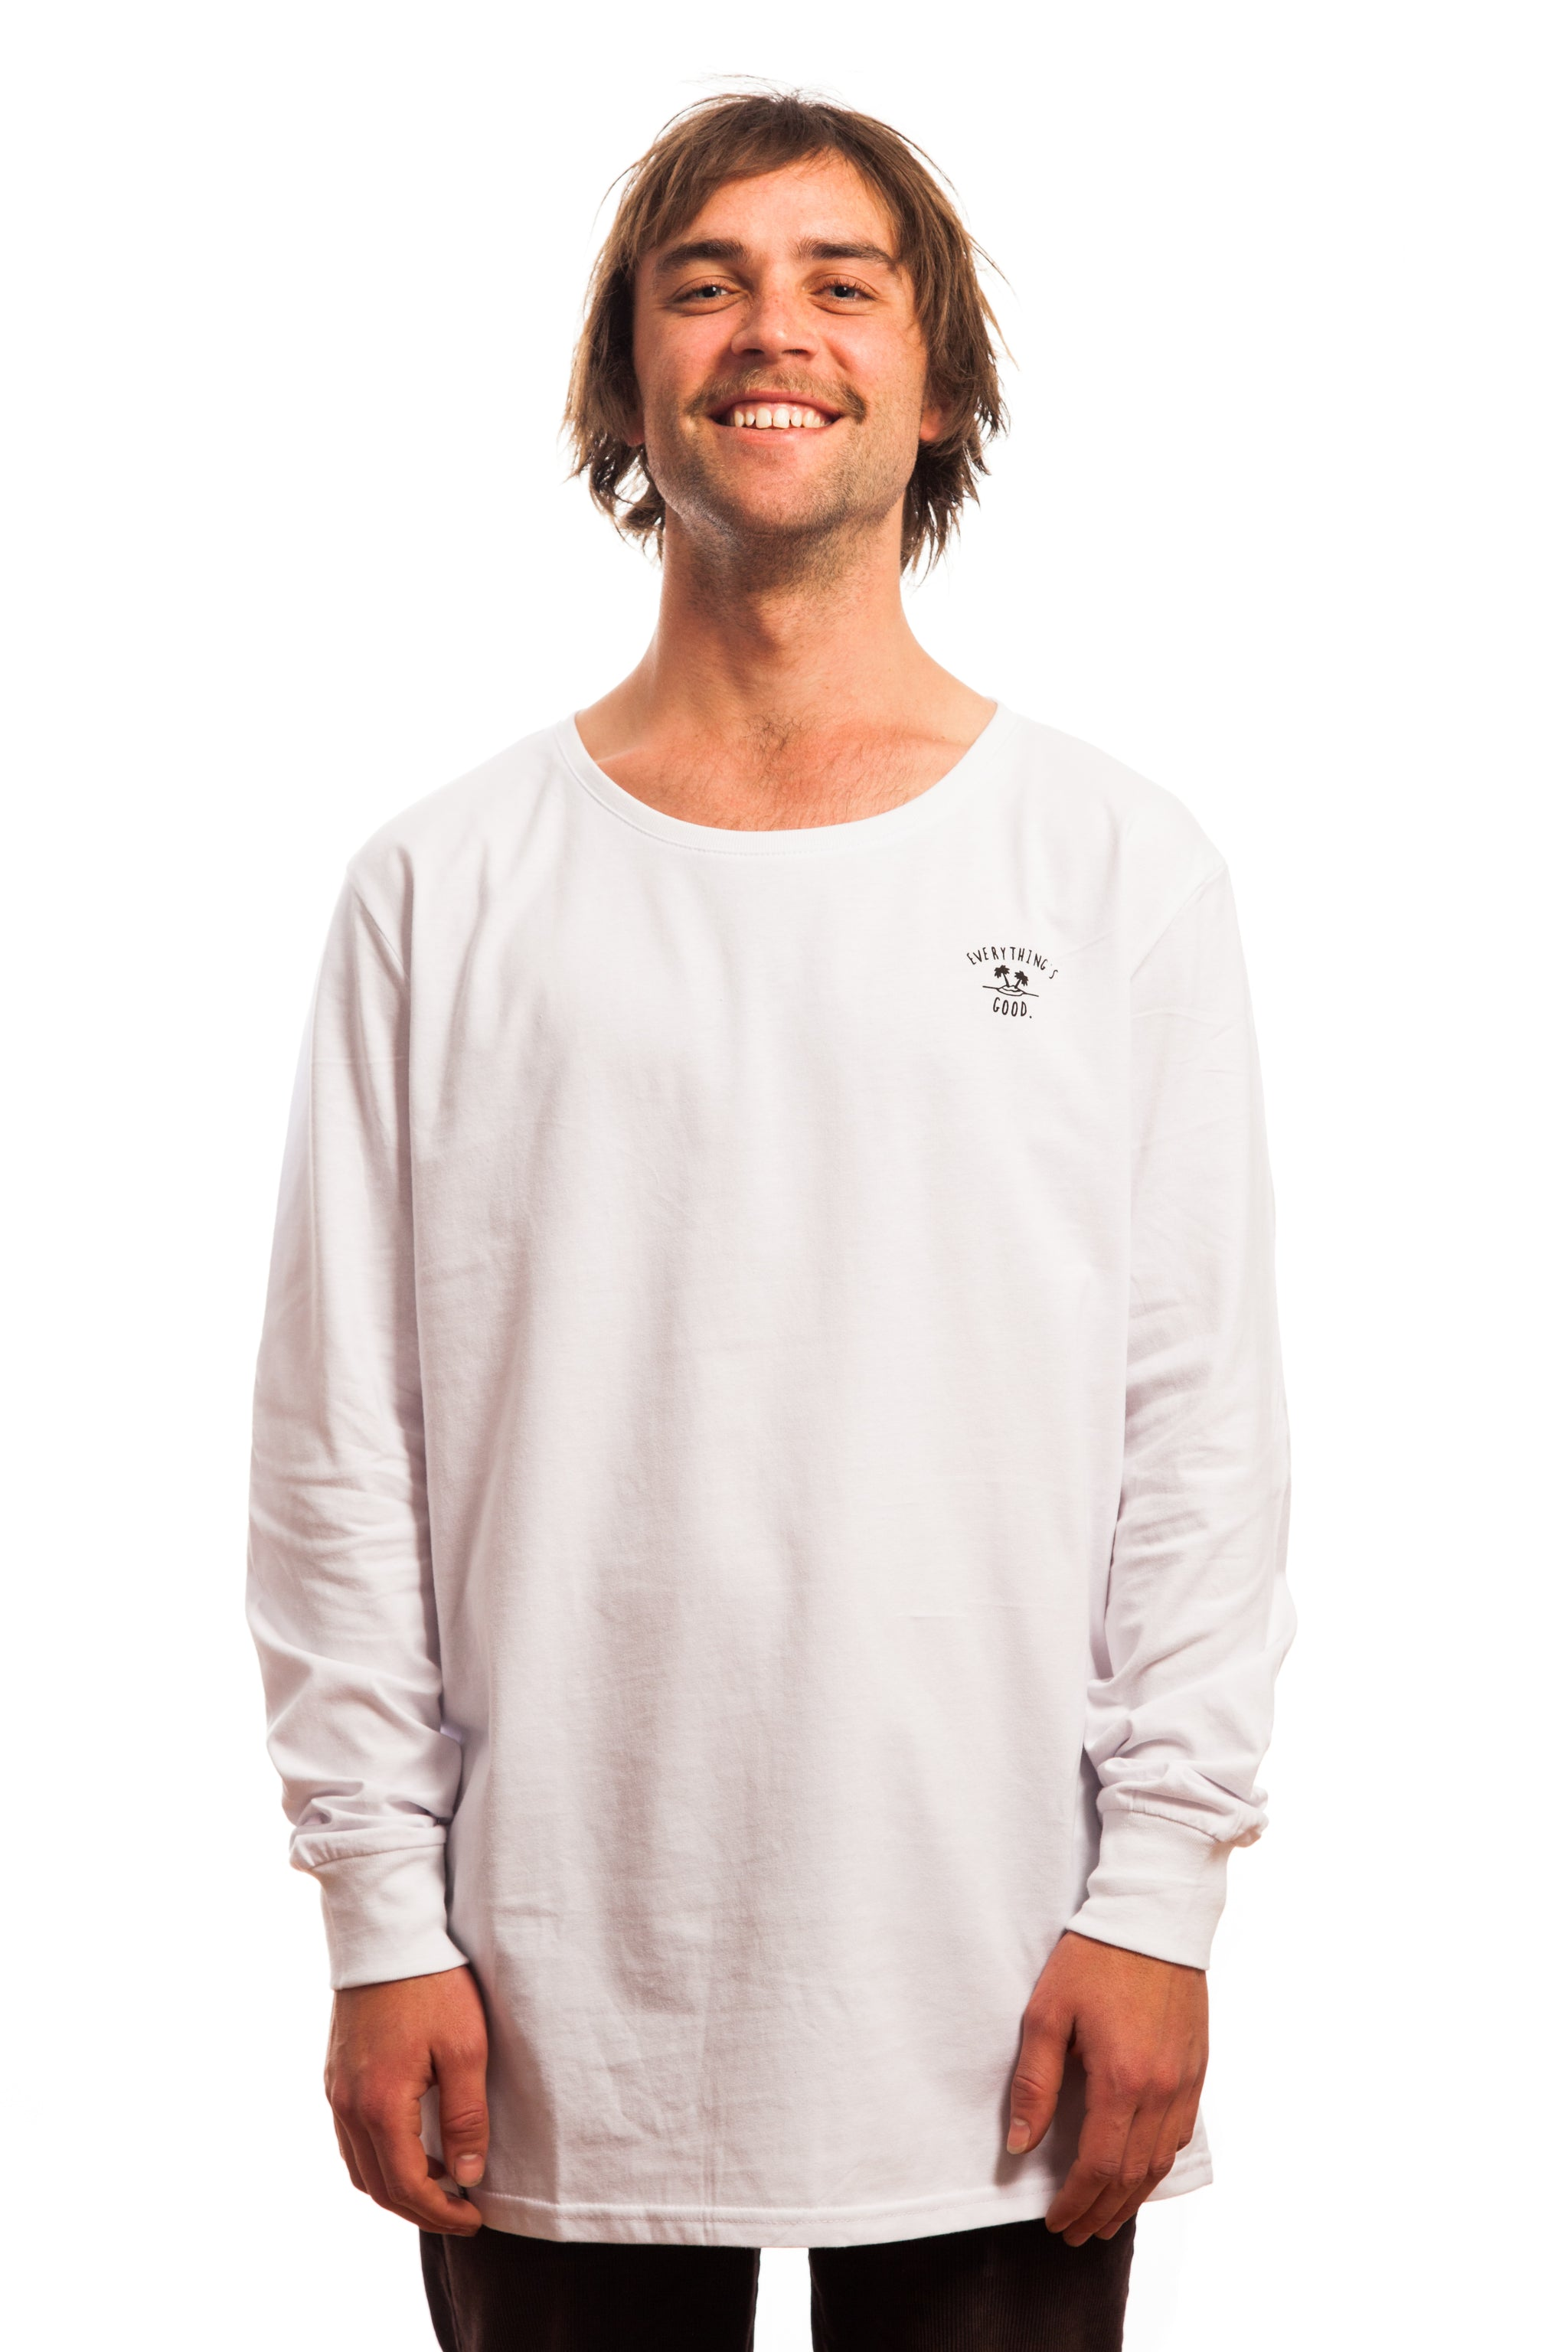 Vitamin Sea Longsleeve // White